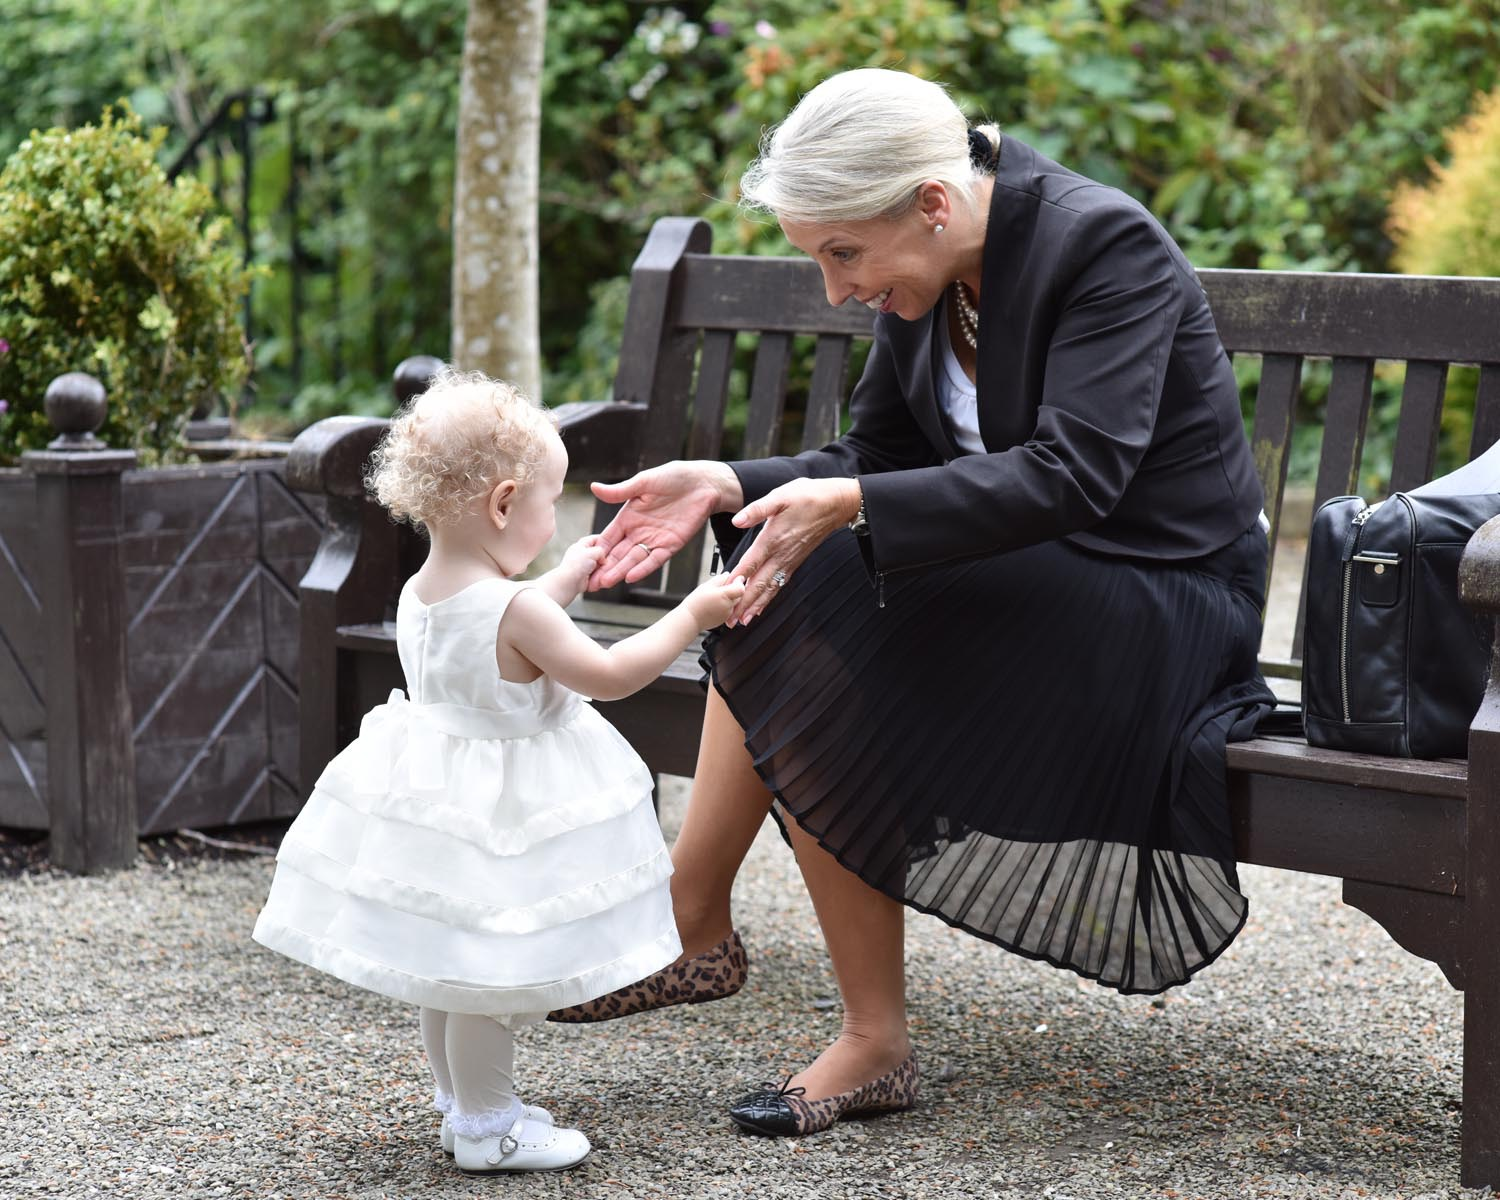 Wedding Planner Babysitting a Child